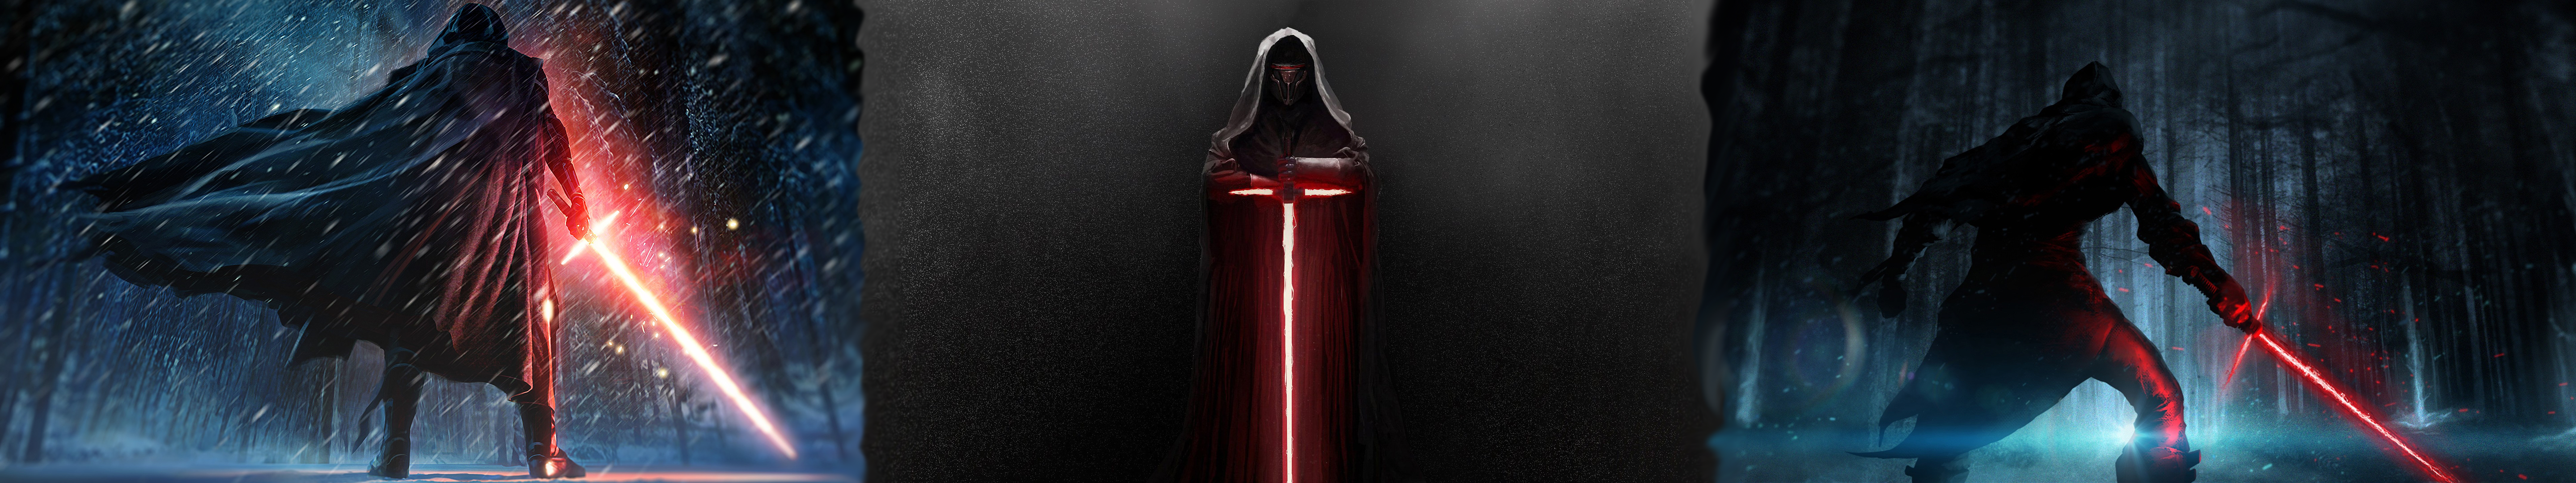 Star Wars Triple Screen Png Free Star Wars Triple Screen Png Transparent Images 57292 Pngio